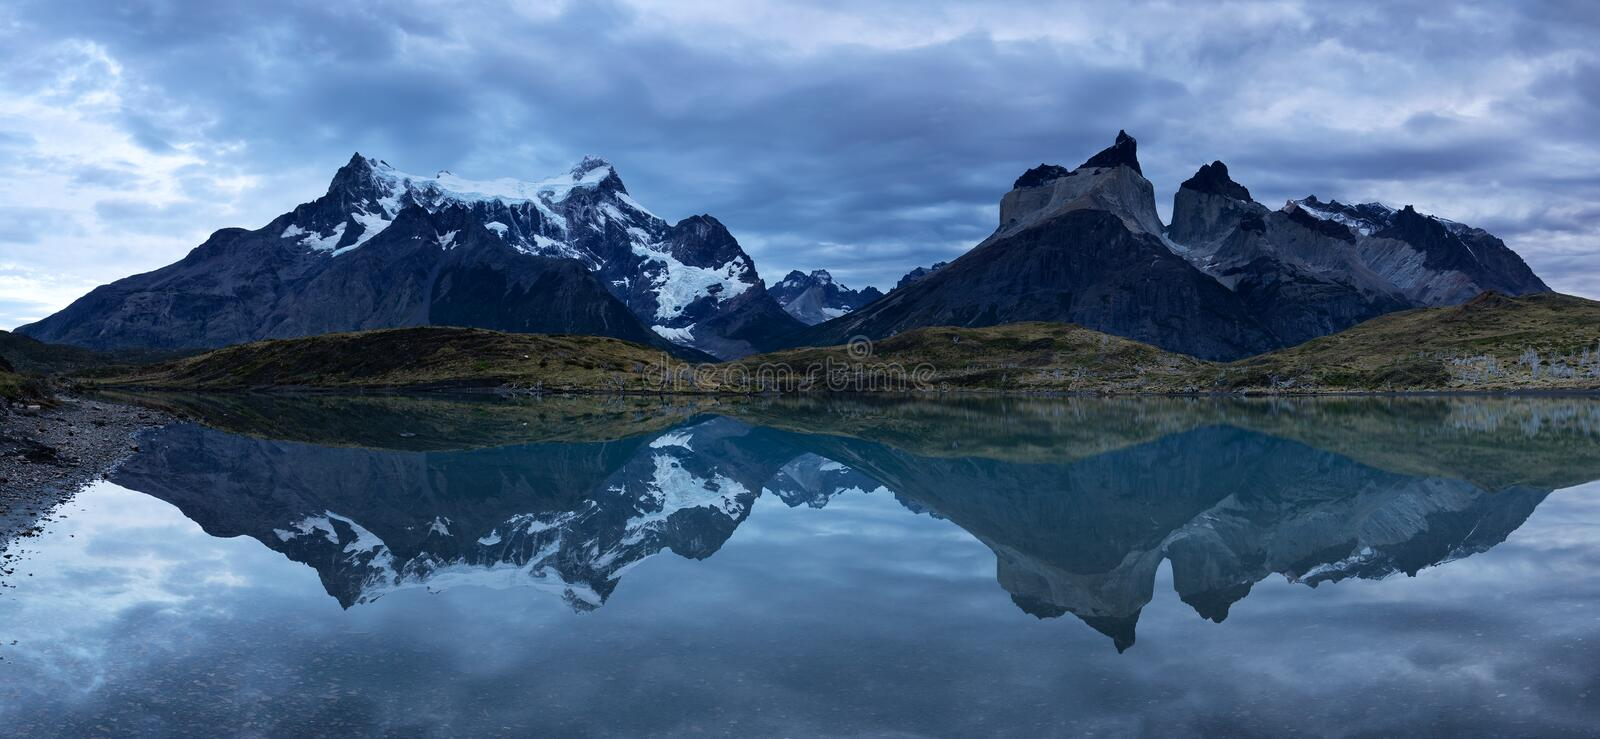 Torres del Paine. Autumn view from Torres del Paine with clouds, during the sunset, Chile royalty free stock photos